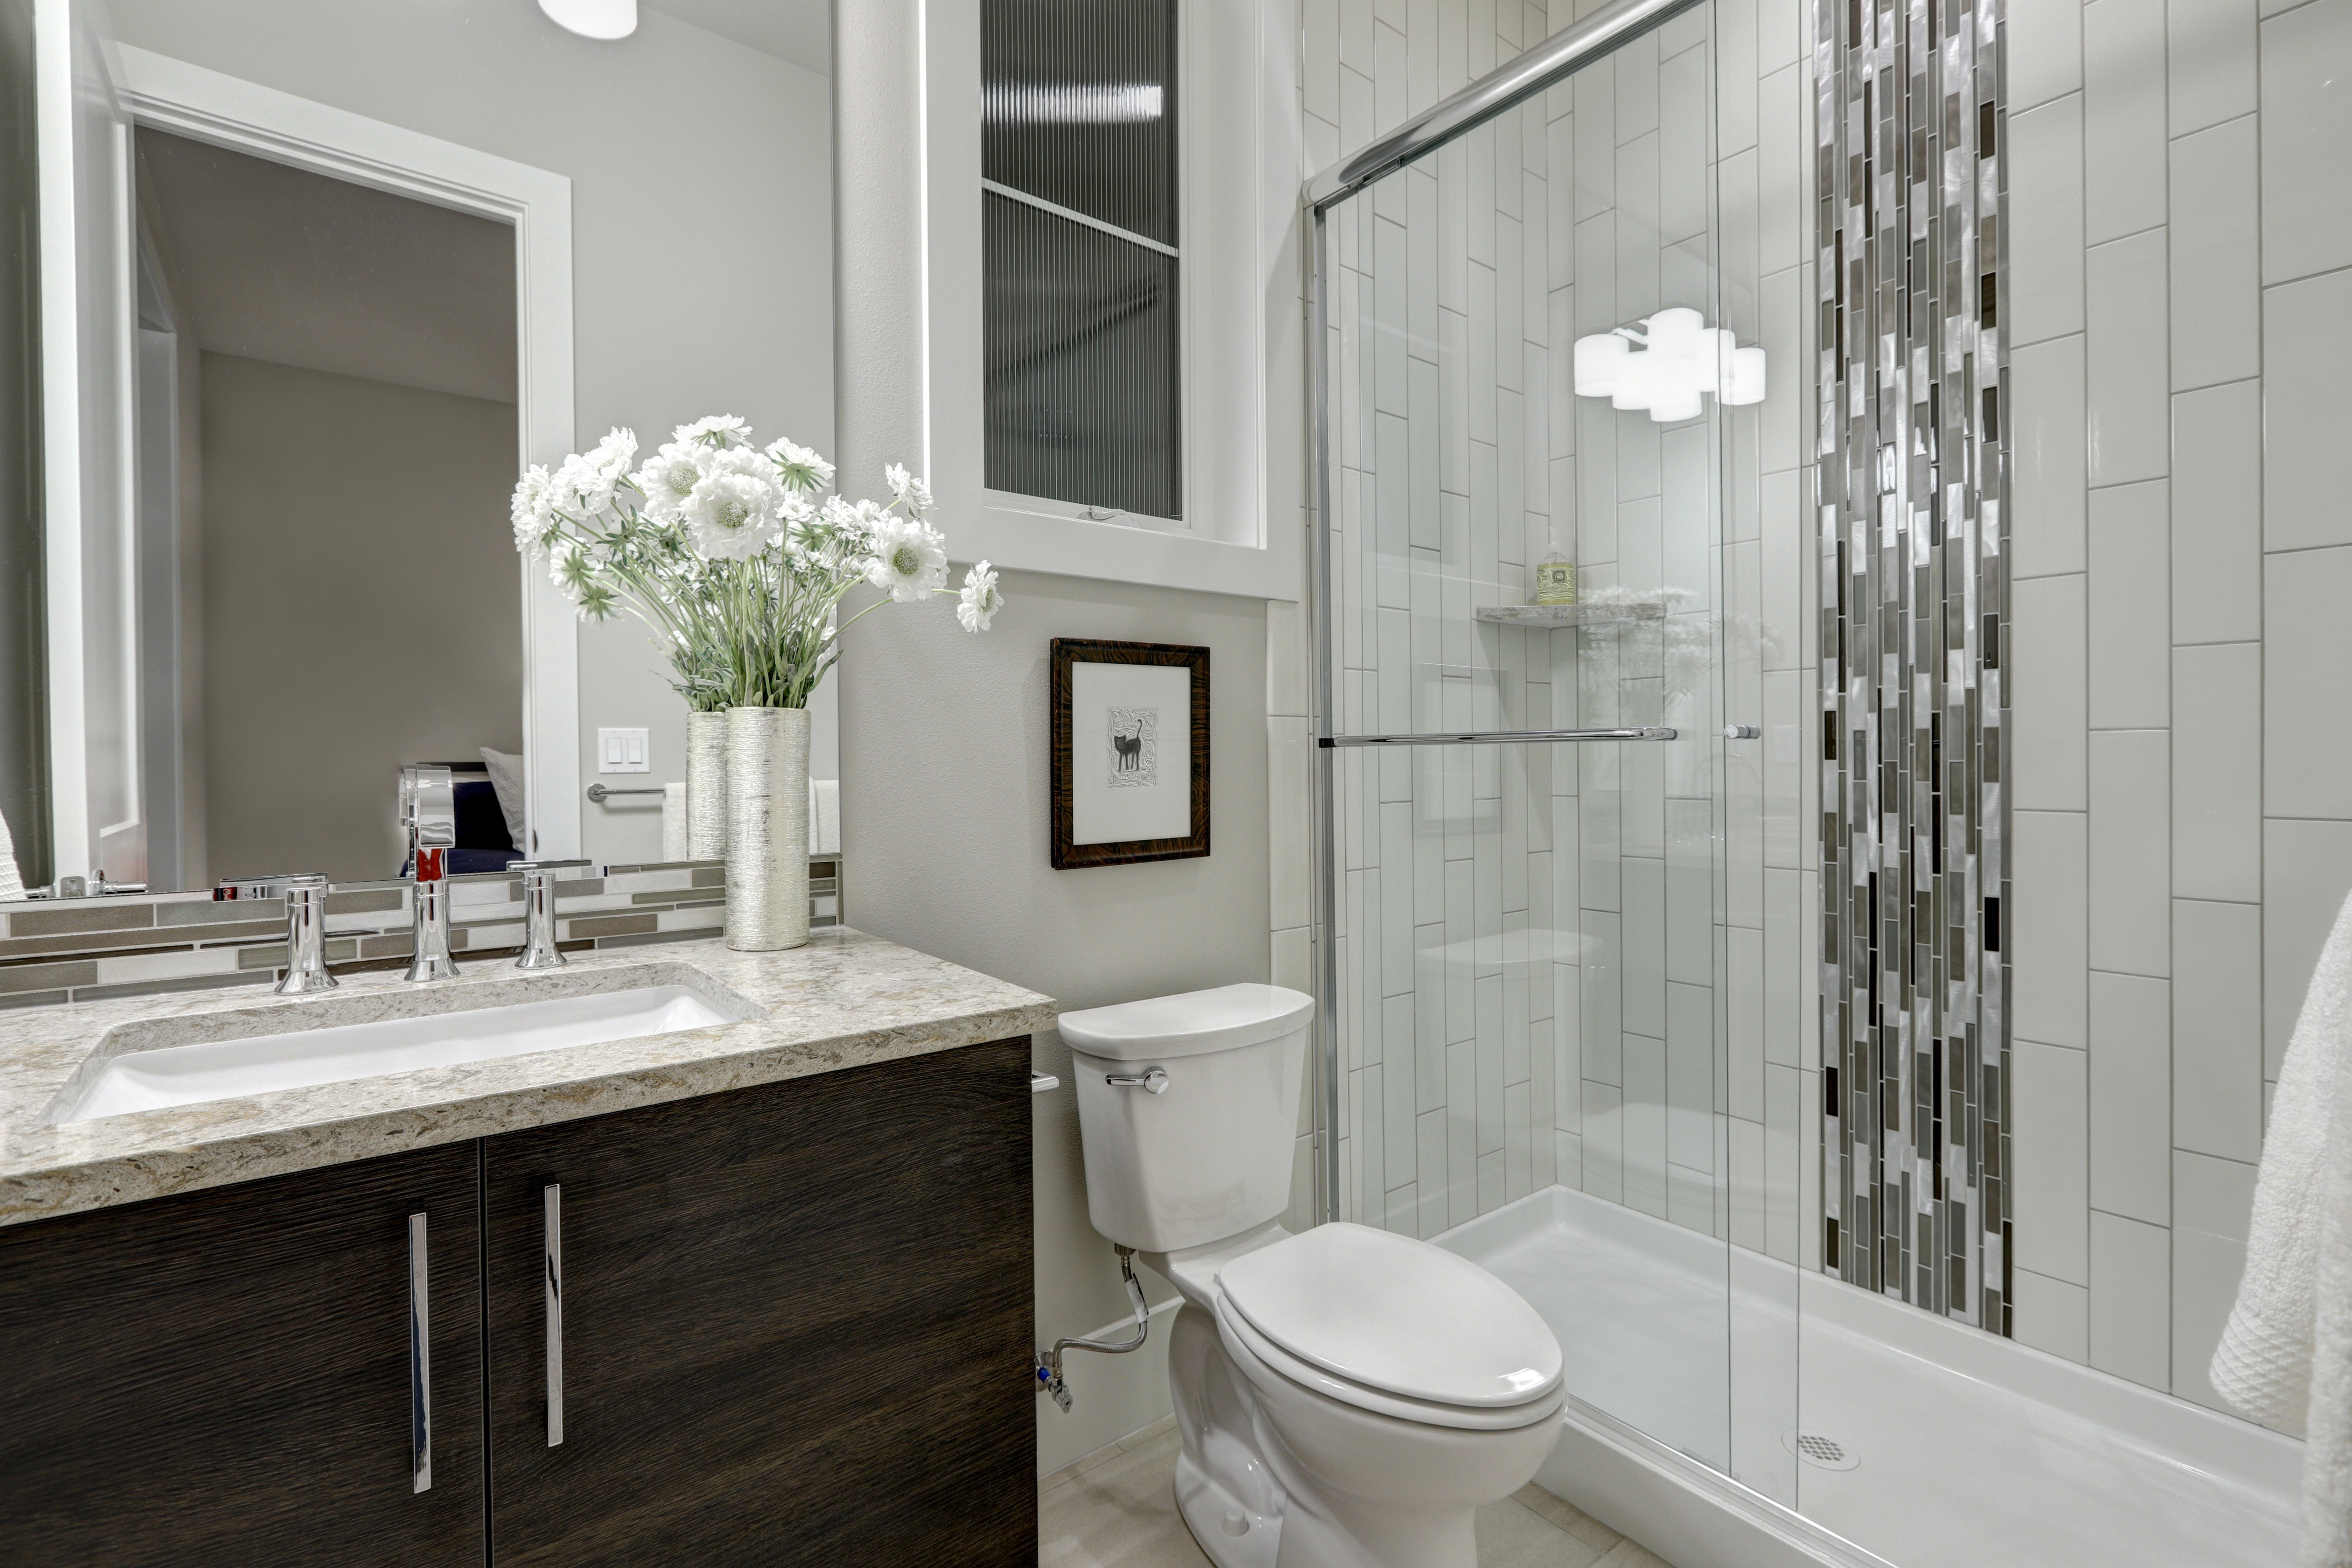 Bathroom Remodel with modern vanity and hardware with quartz countertop and drop mount sink.  Shower includes corner shelving and vertical subway tile with mosaic accent tile in the center.